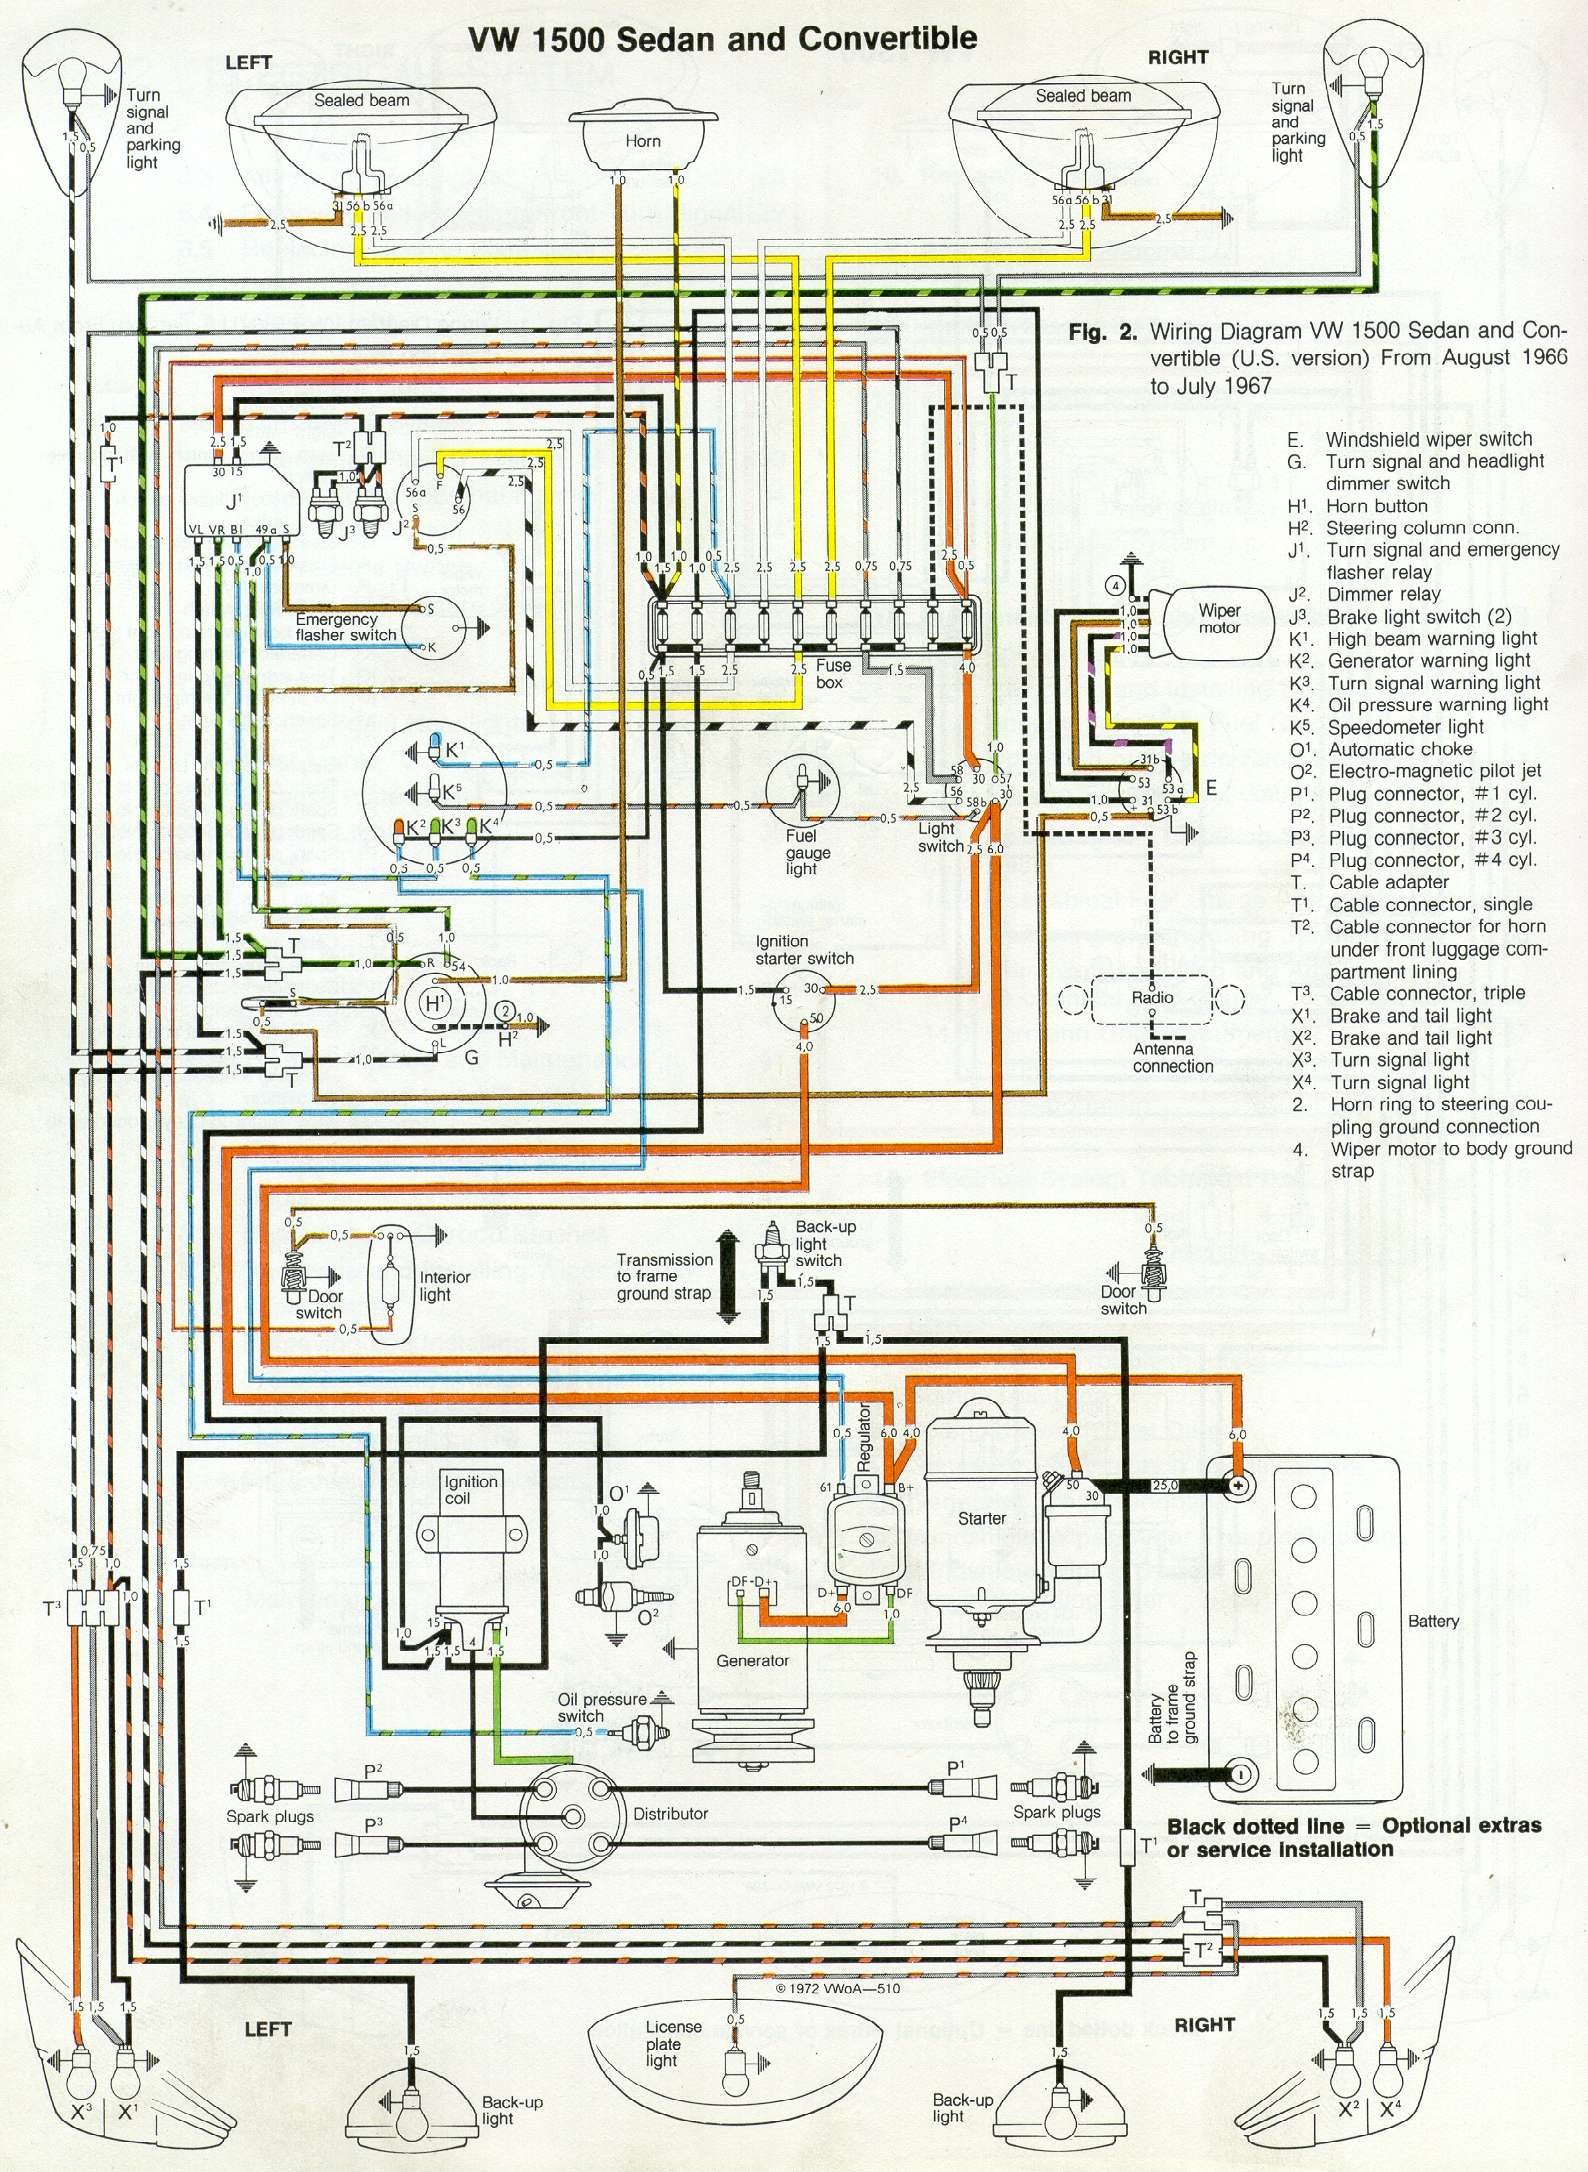 VW bug_1967 other diagrams vw beach buggy wiring diagram at creativeand.co